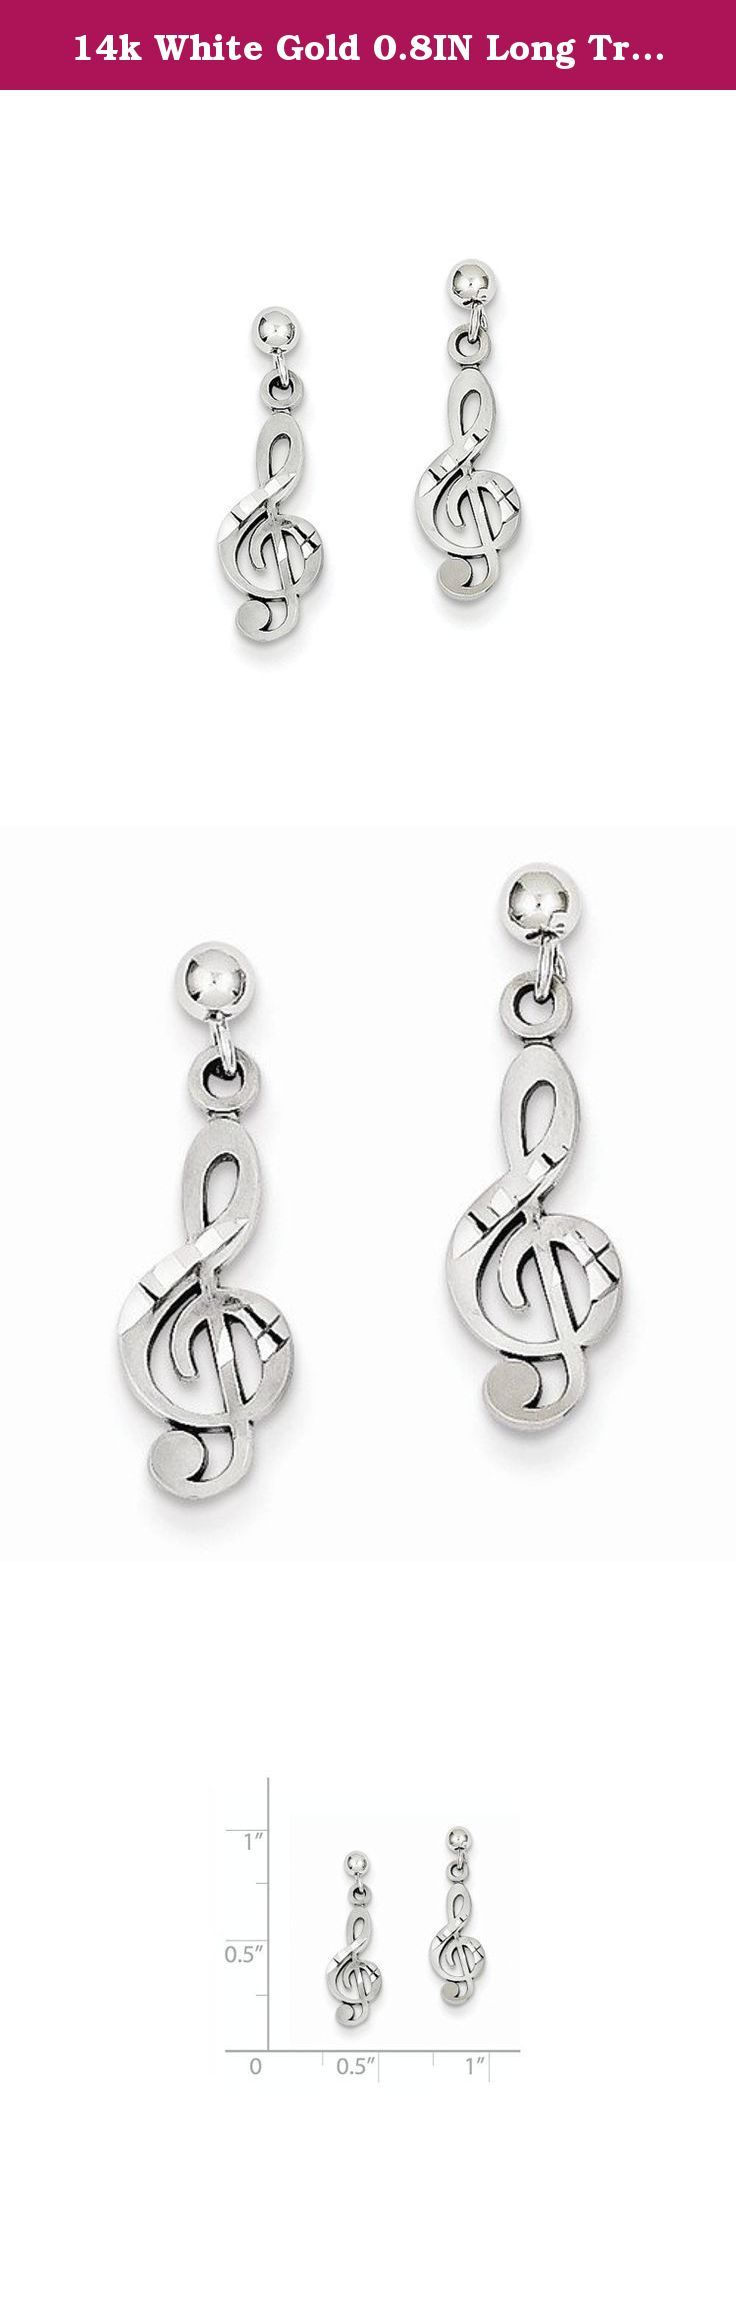 14k White Gold 0.8IN Long Treble Clef Dangle Post Earrings. Length:22mm / Width:6mm / Diamond-cut / 14K White gold / Post / Dangle / Polished & satin.